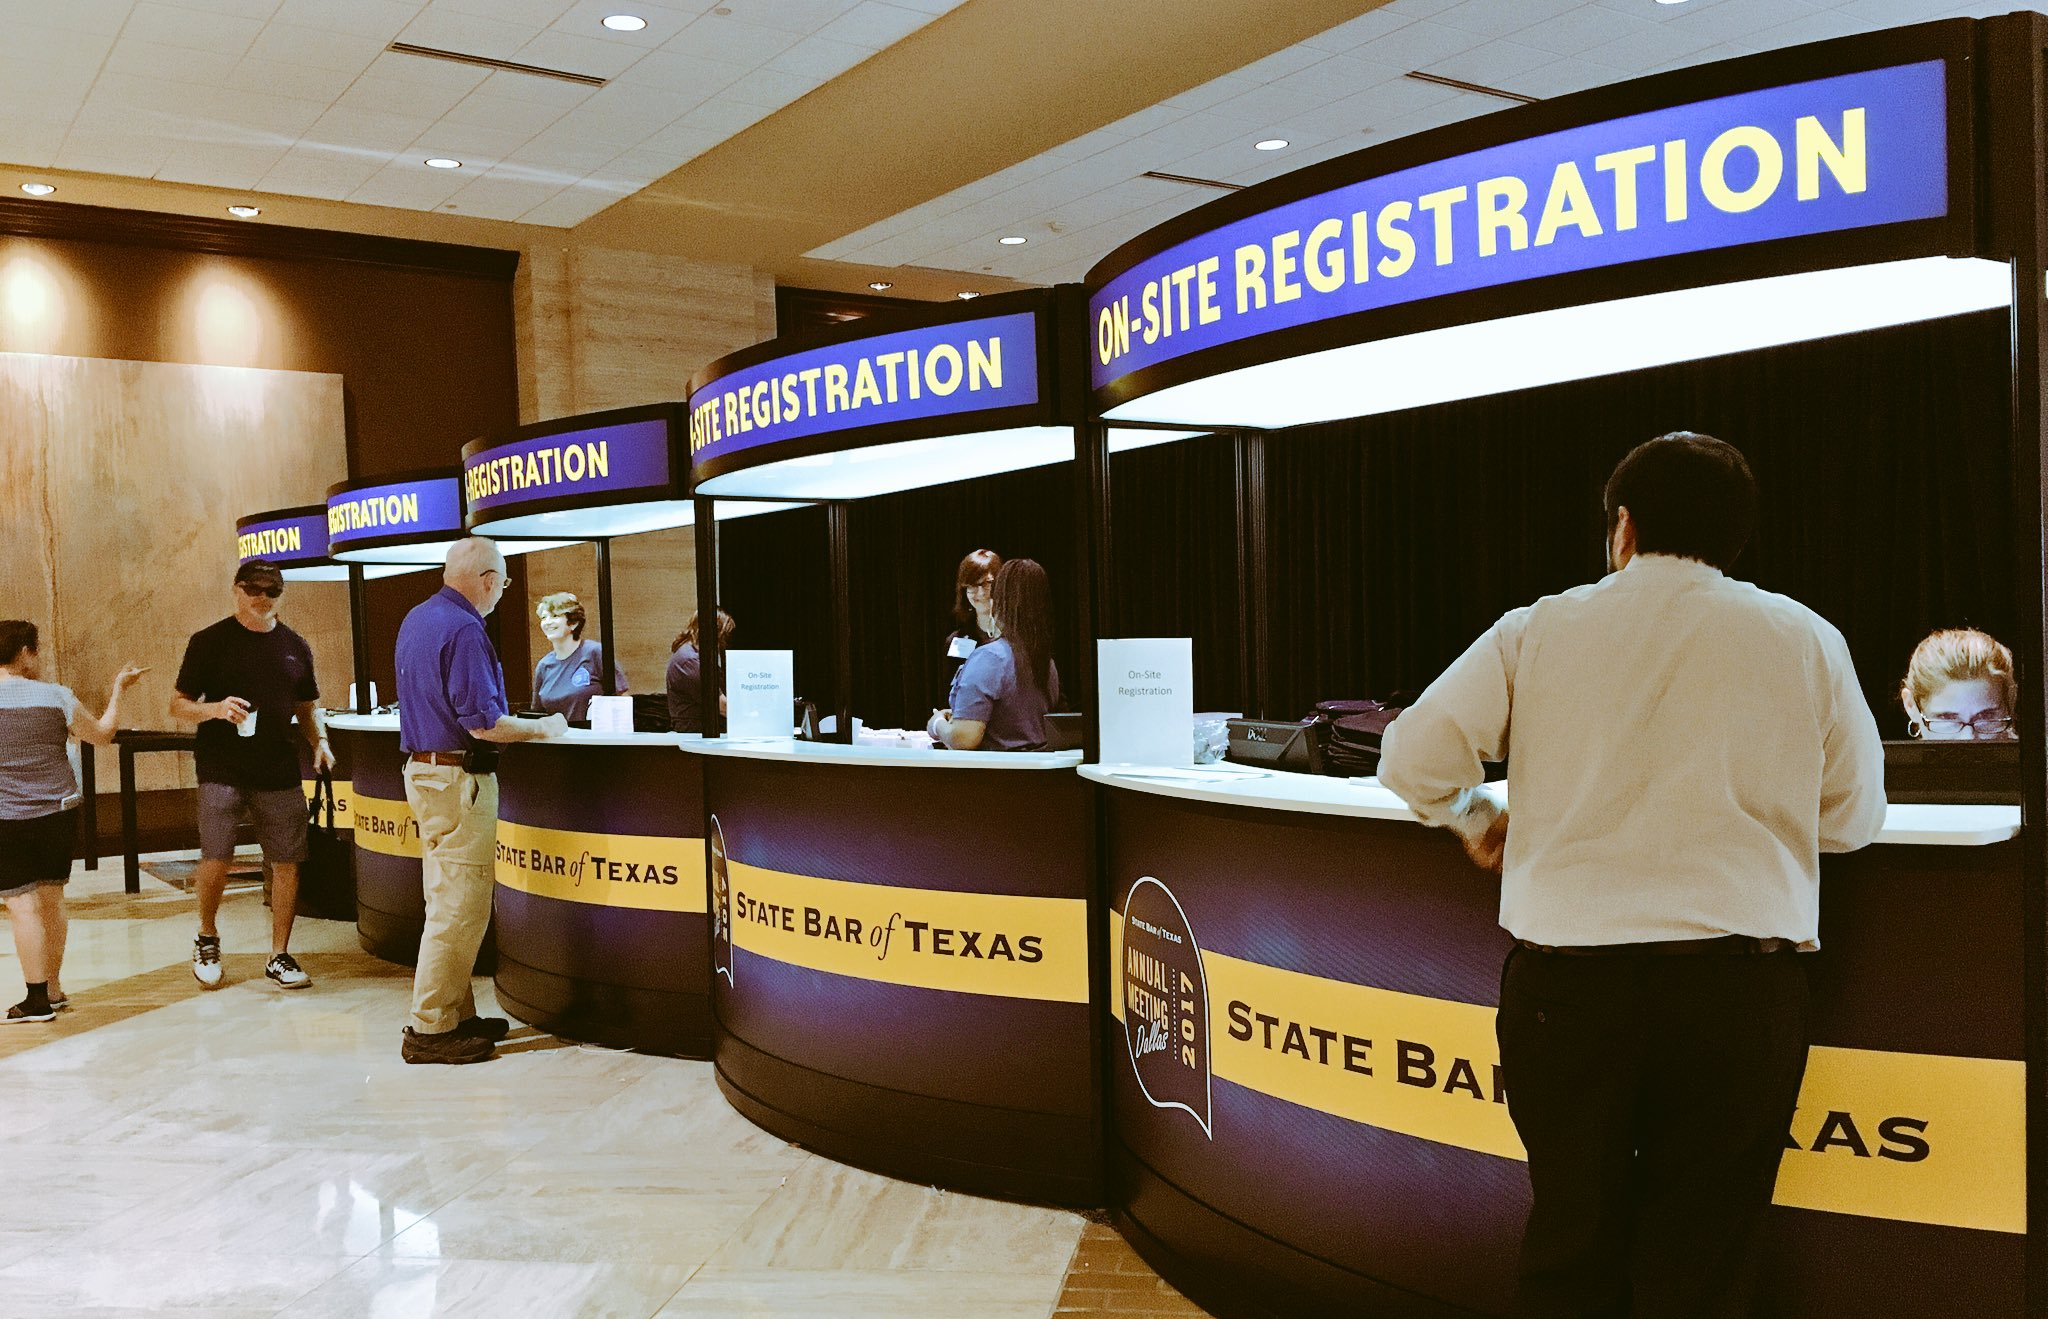 Early registration for #sbot17 at the @HiltonAnatole is now underway from 4-6! https://t.co/JXfcun68wM